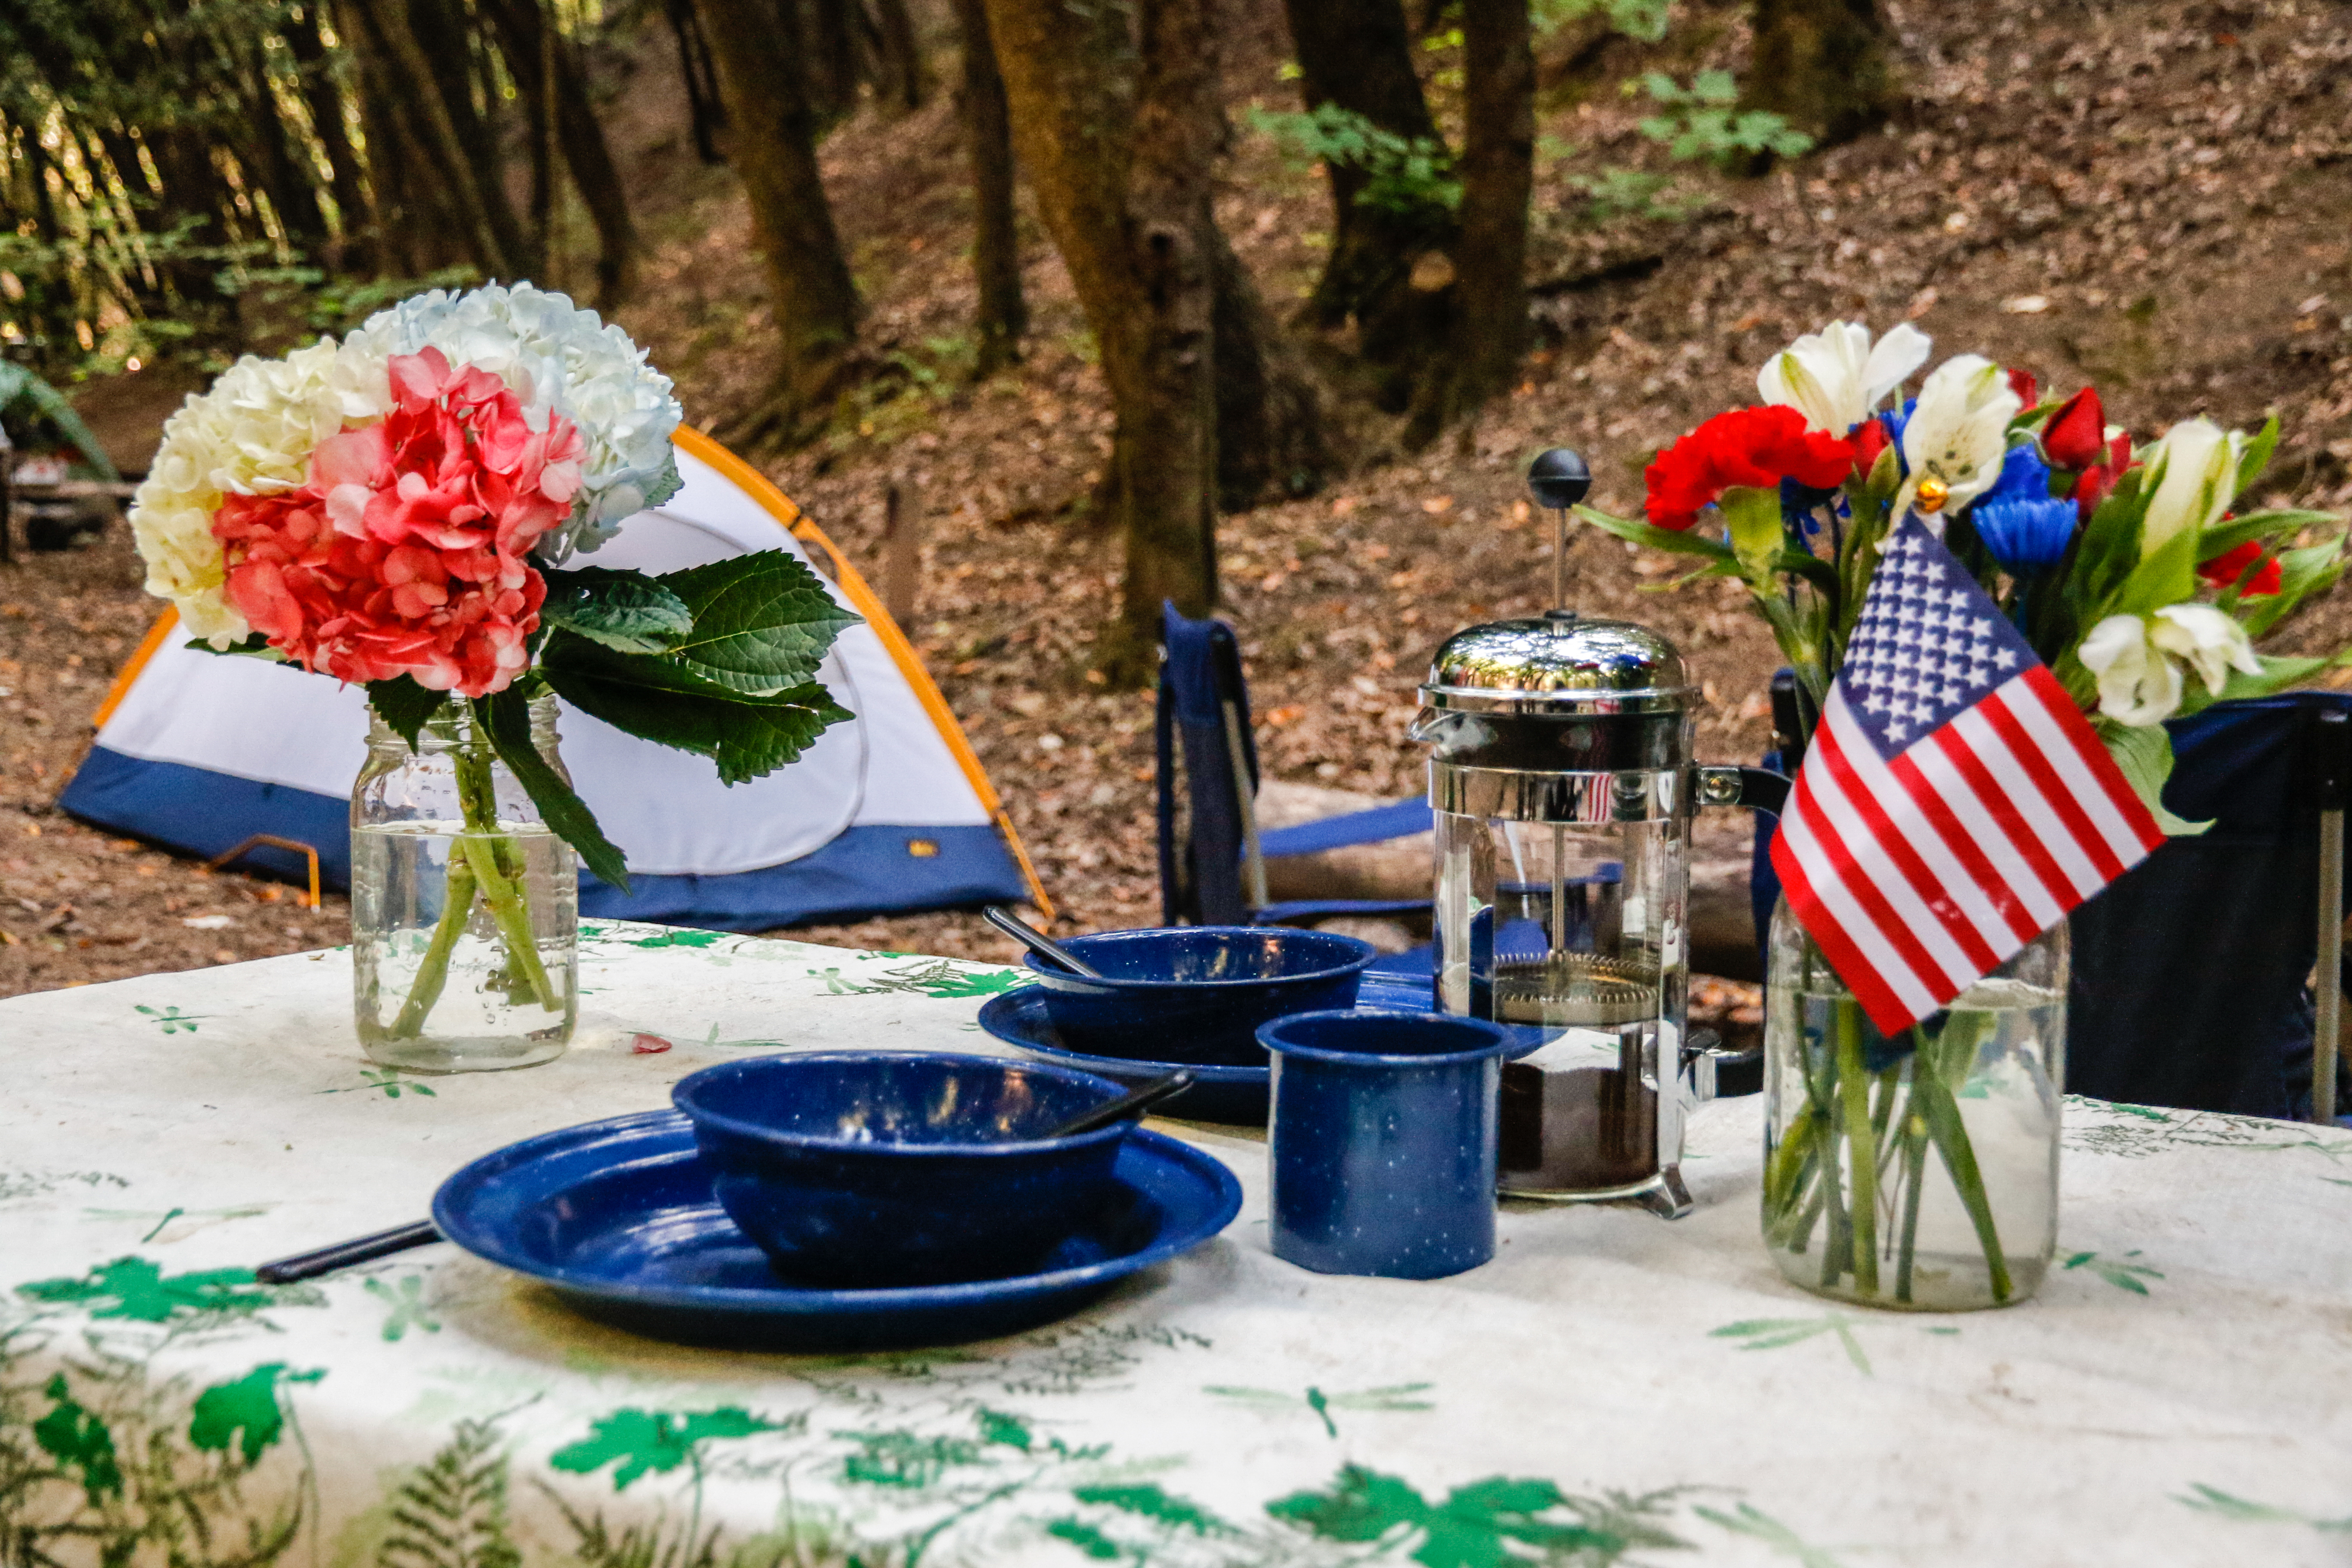 Travel Tuesday: How to Celebrate Fourth of July in your RV